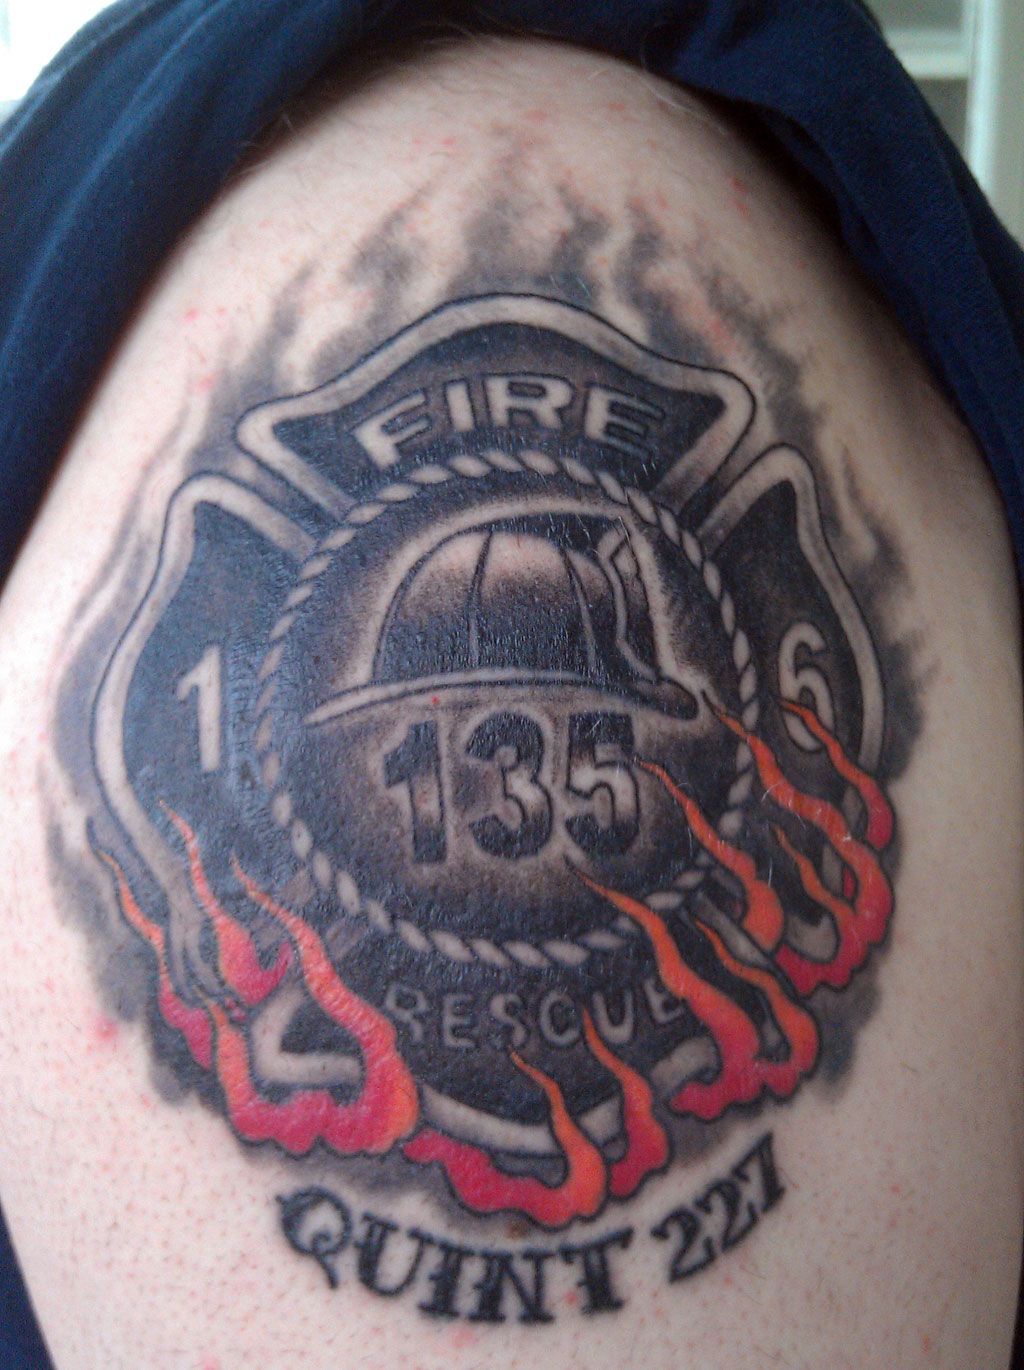 Firefighter Maltese Cross Tattoos